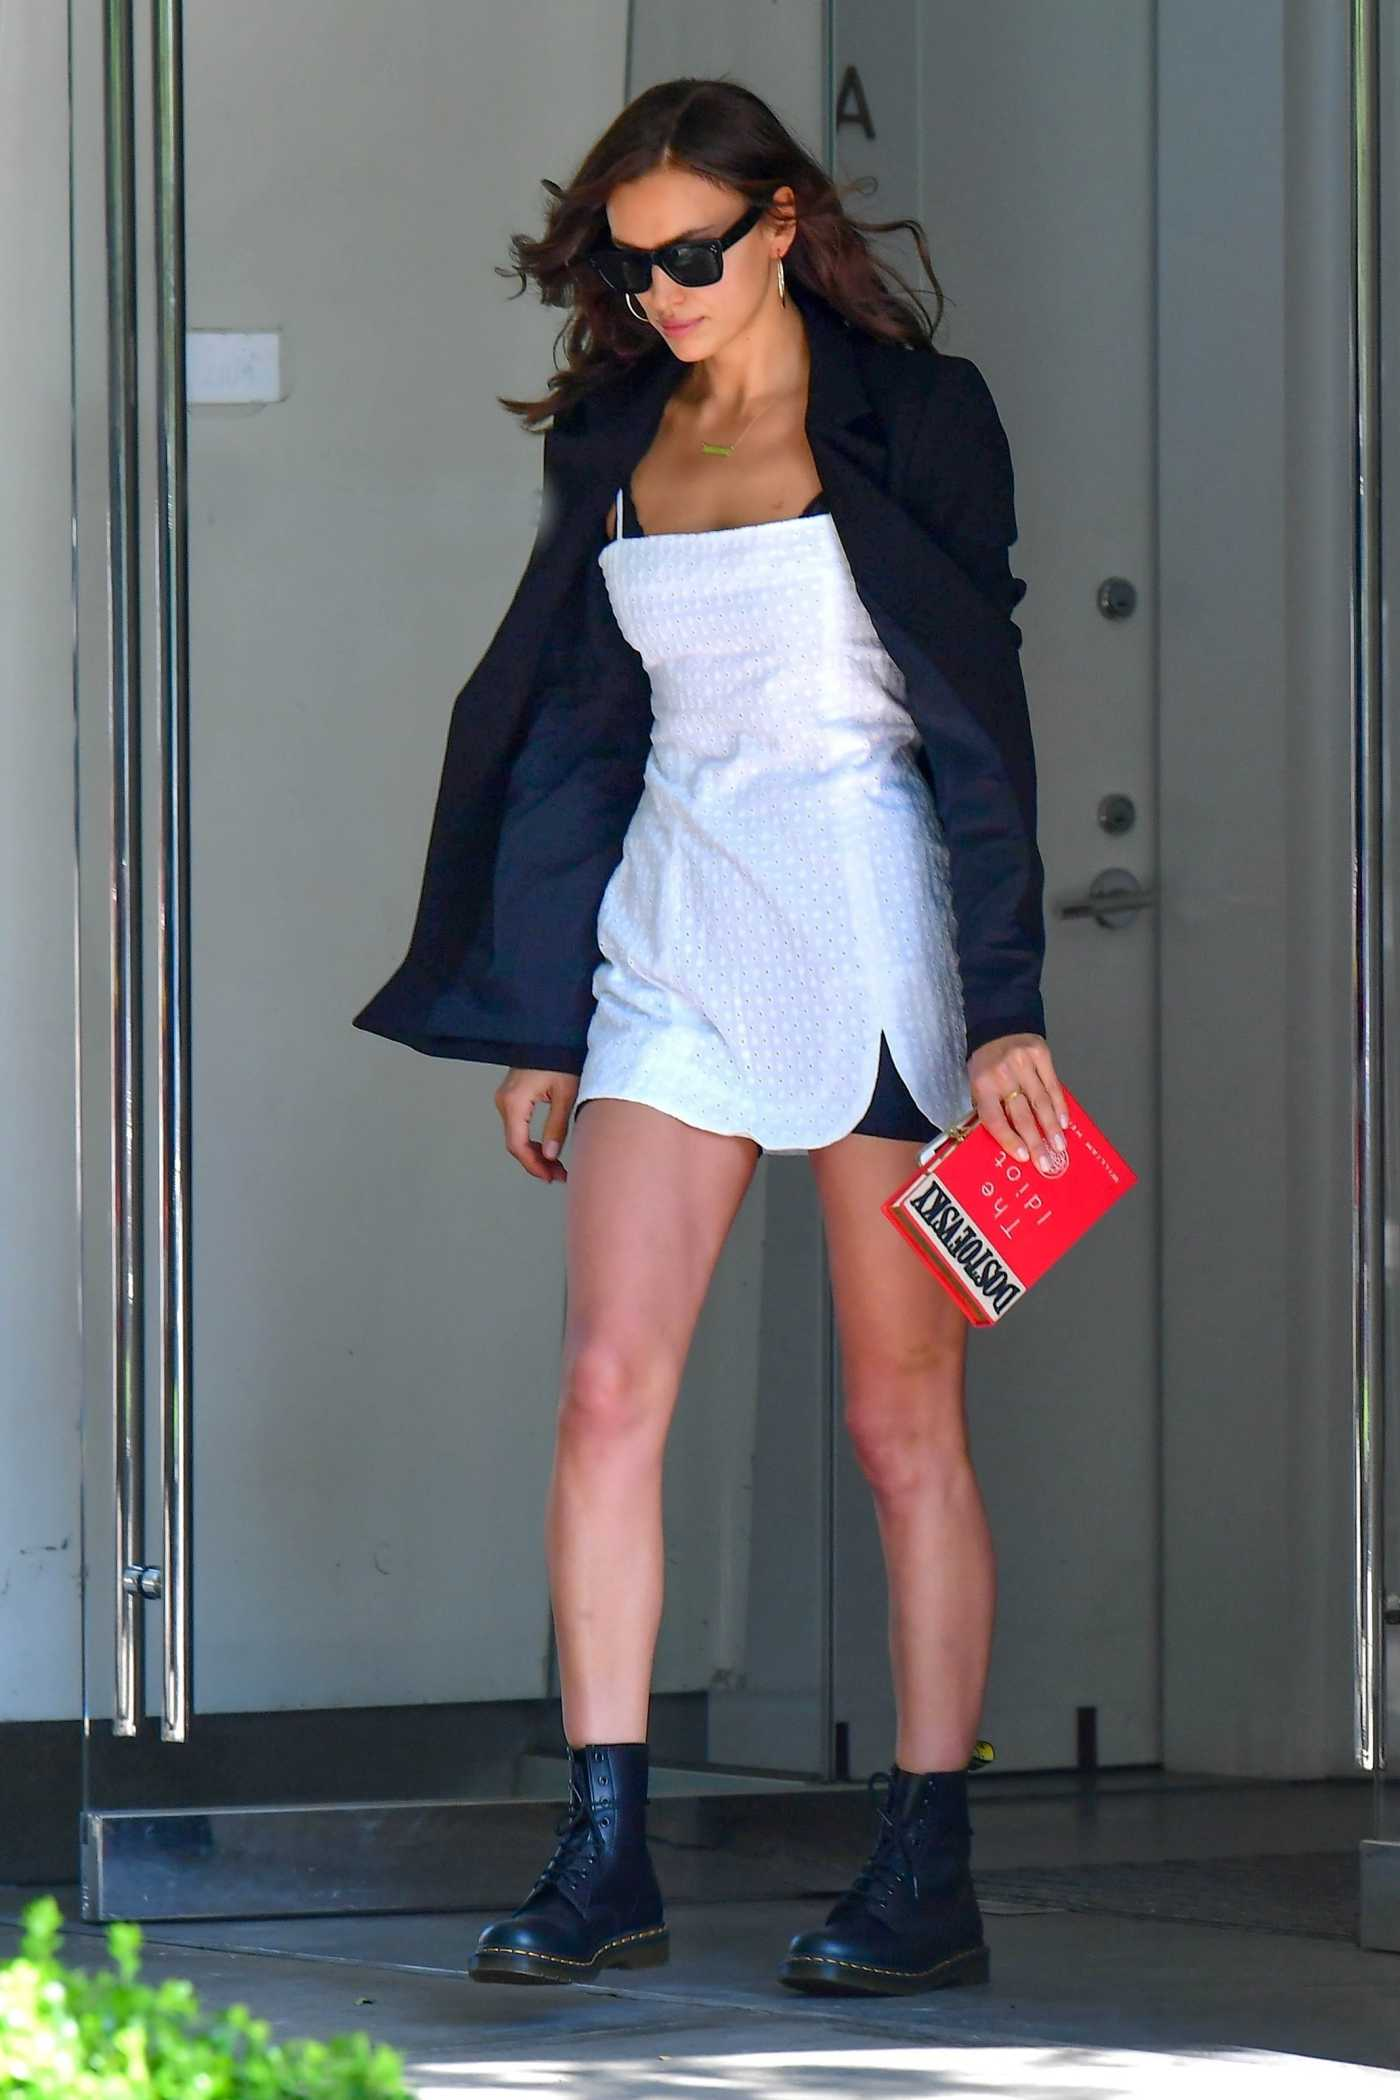 Irina Shayk in a Black Blazer Was Seen Out in New York City 06/28/2019